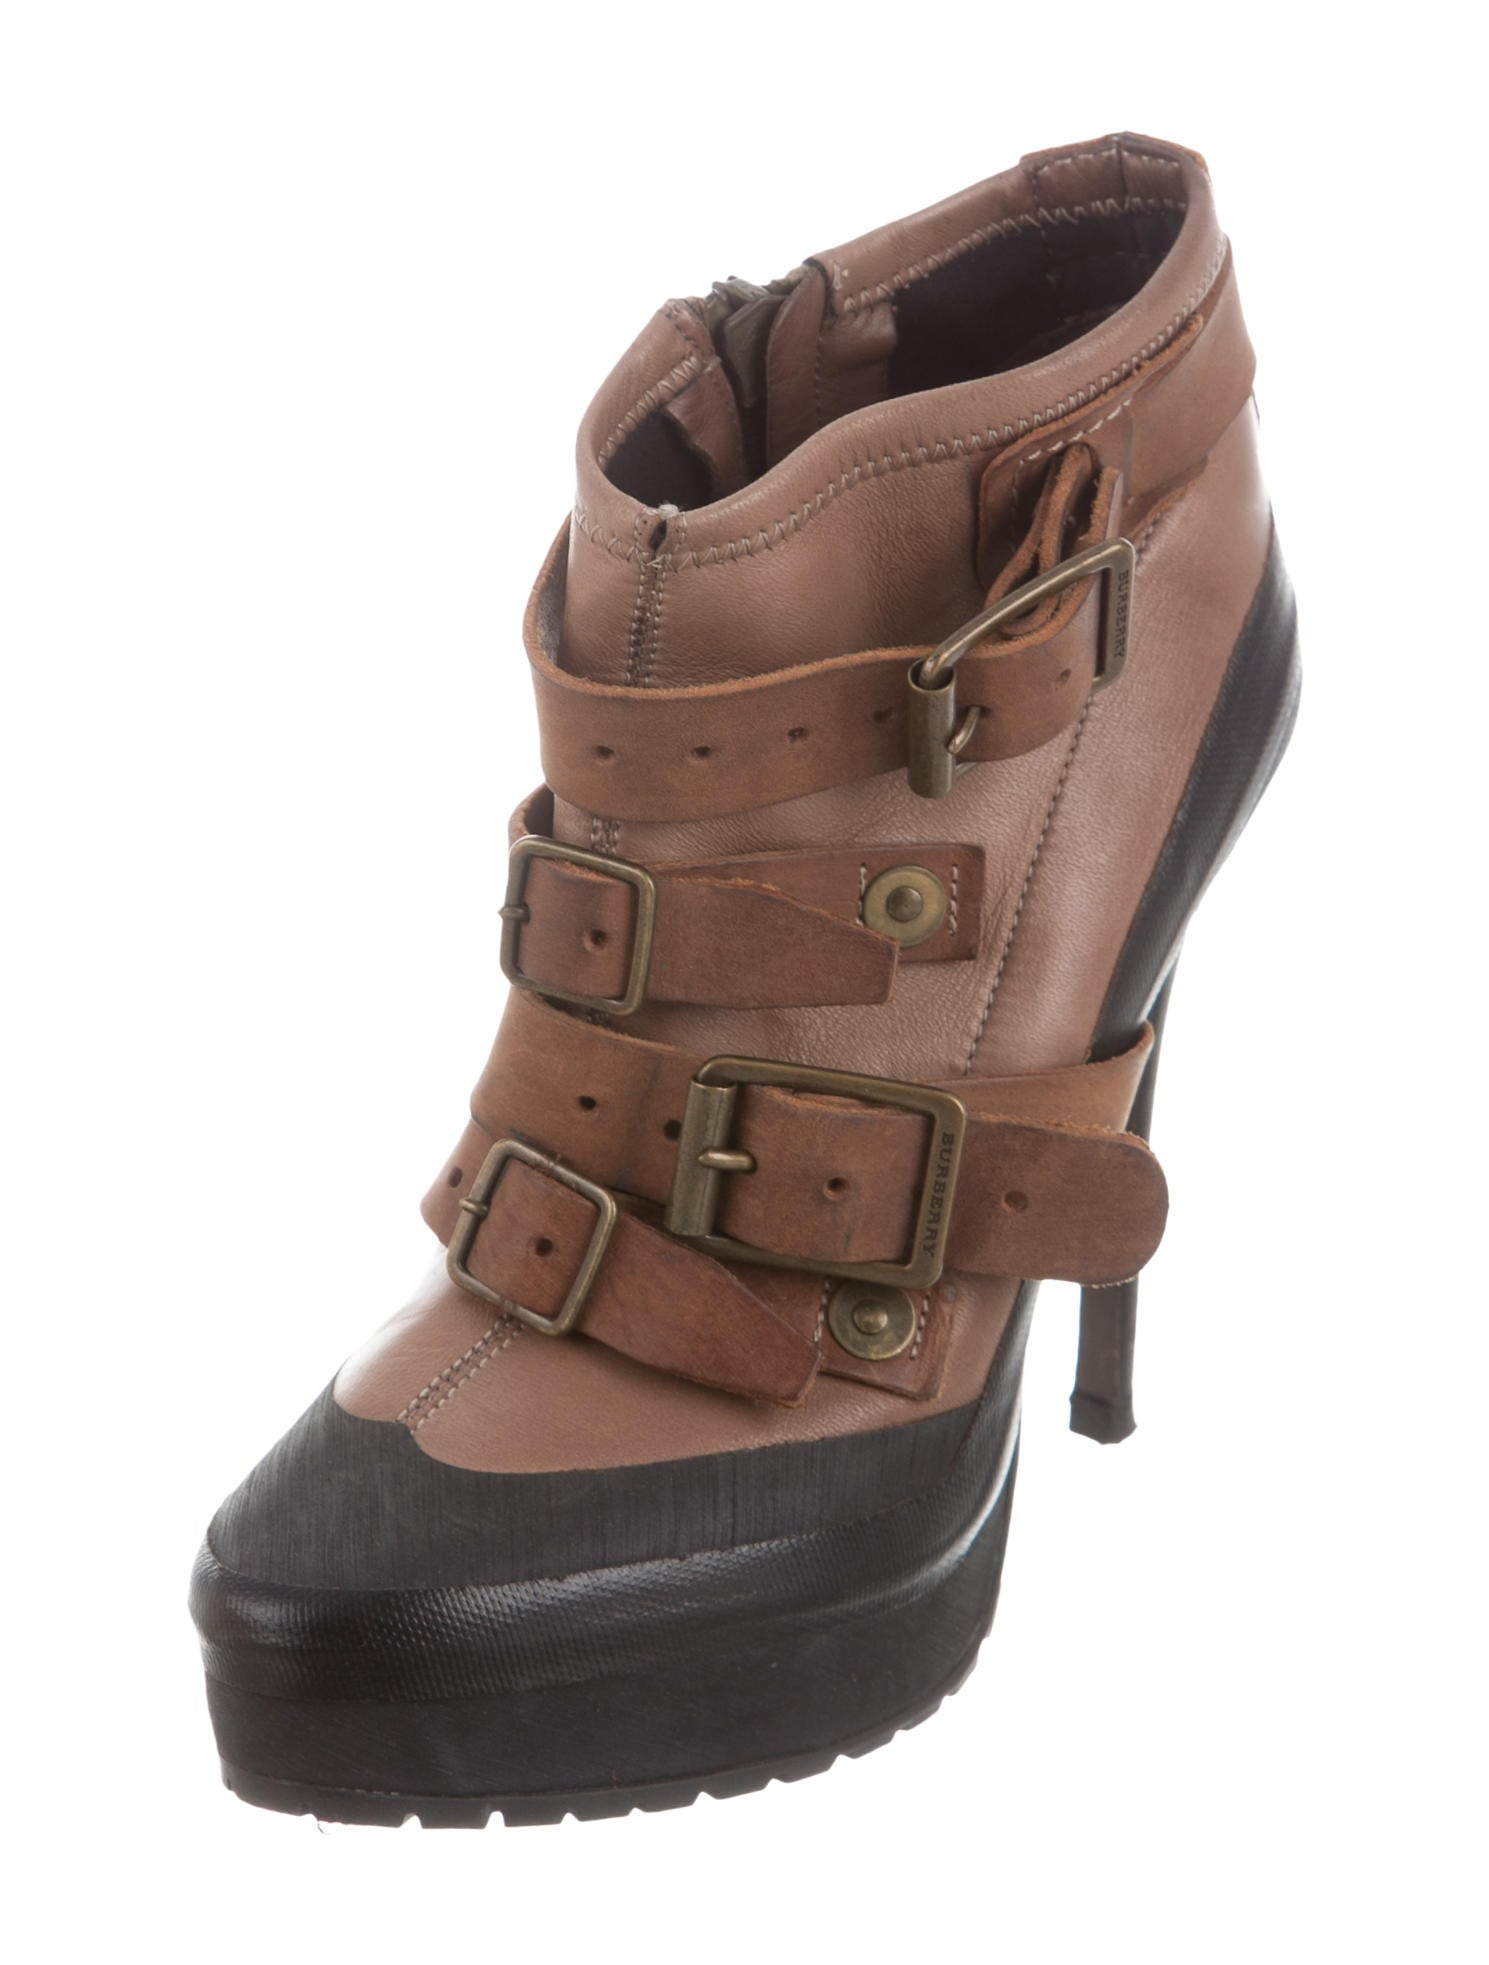 Find great deals on eBay for ankle platform boots. Shop with confidence.